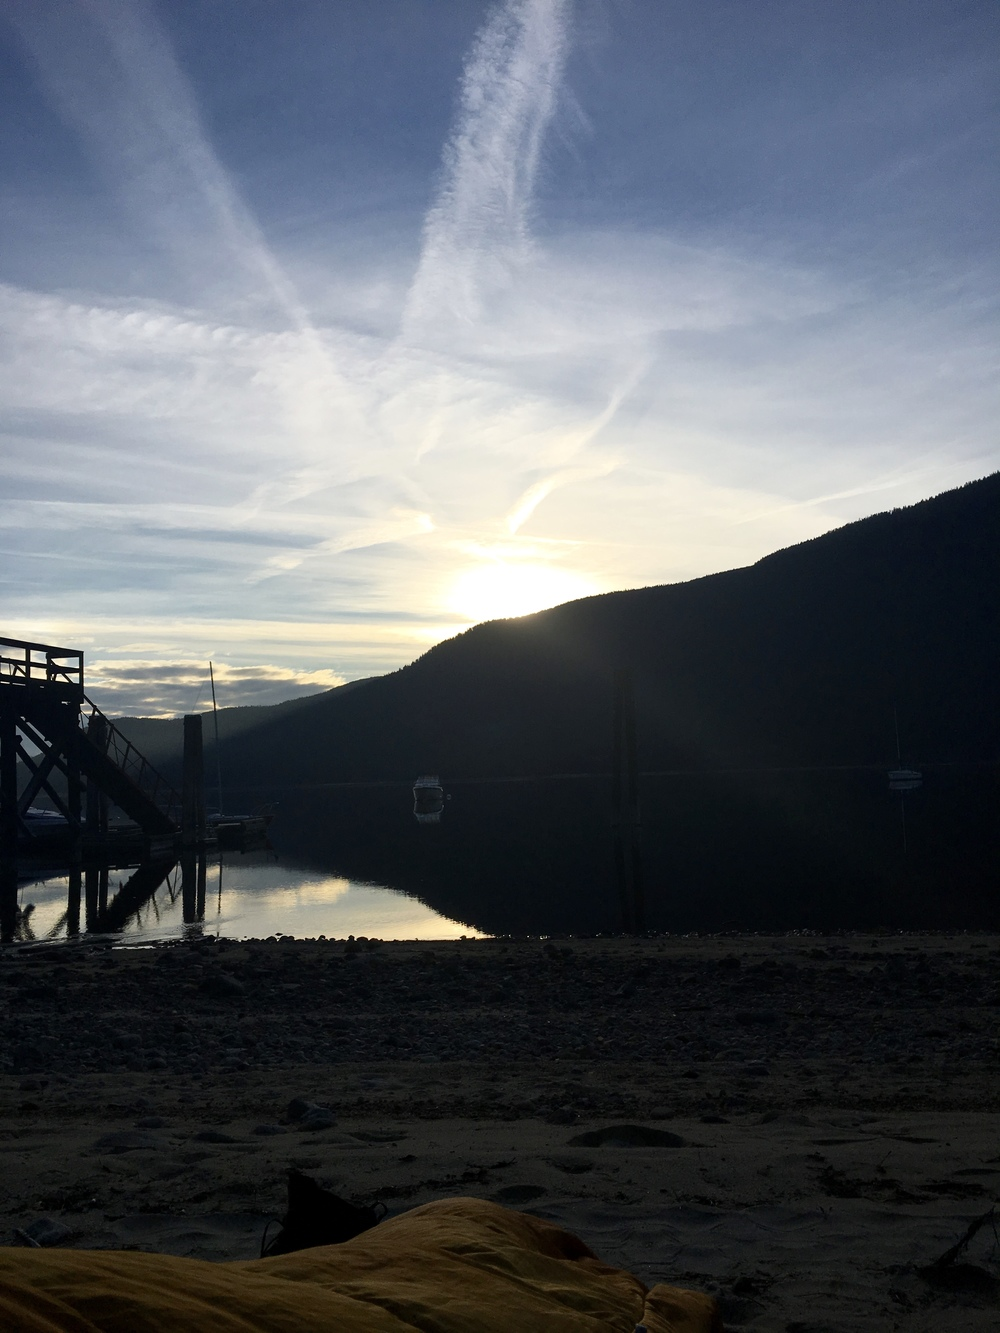 Waking up on the beach on the North Shore of Nelson, BC